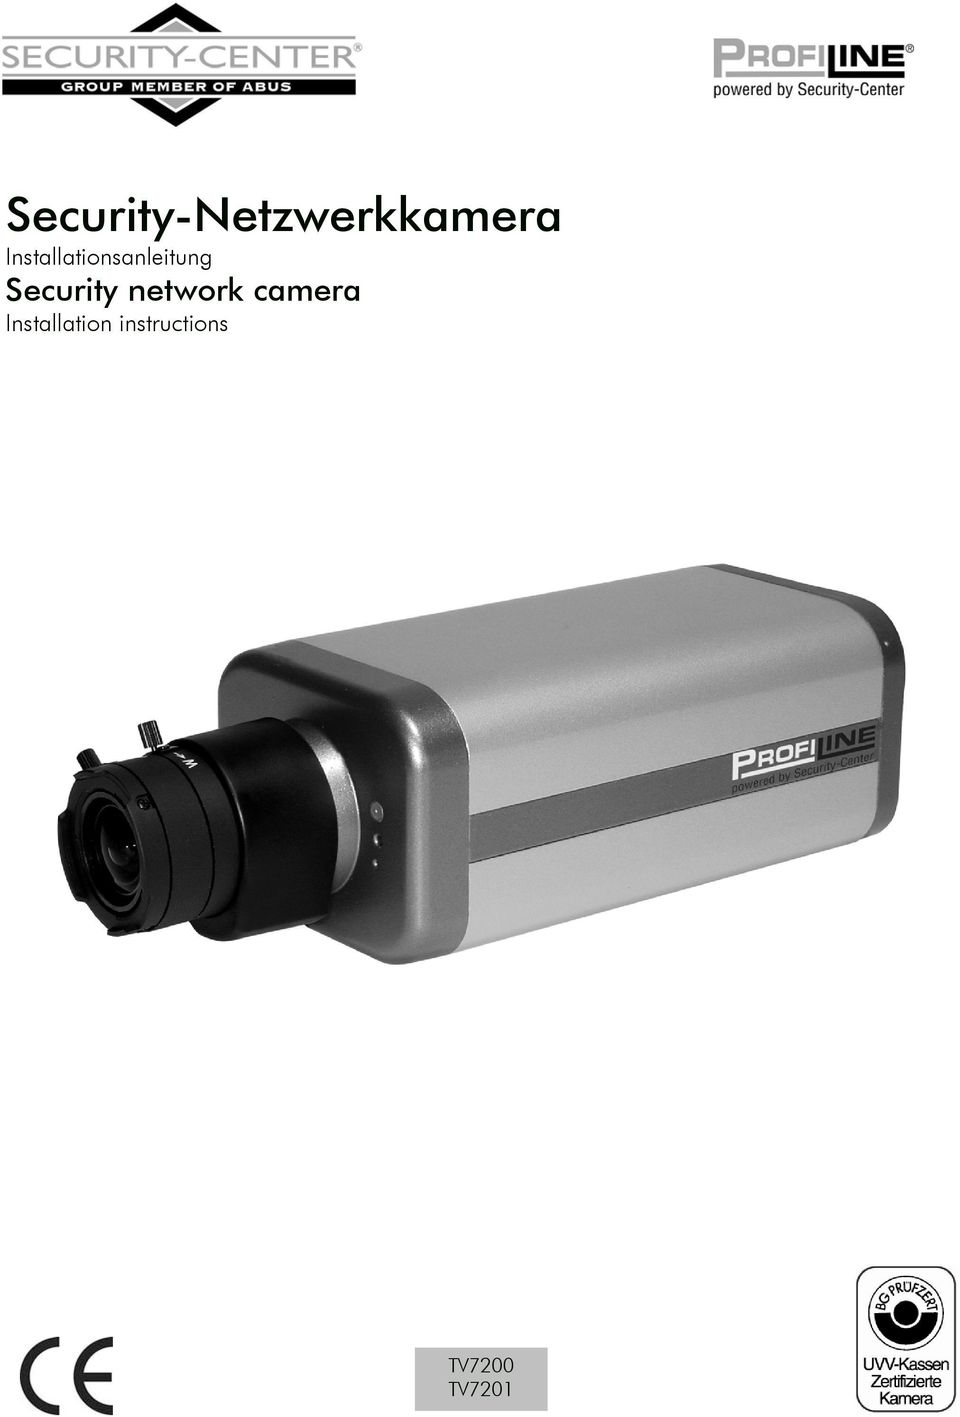 Security network camera